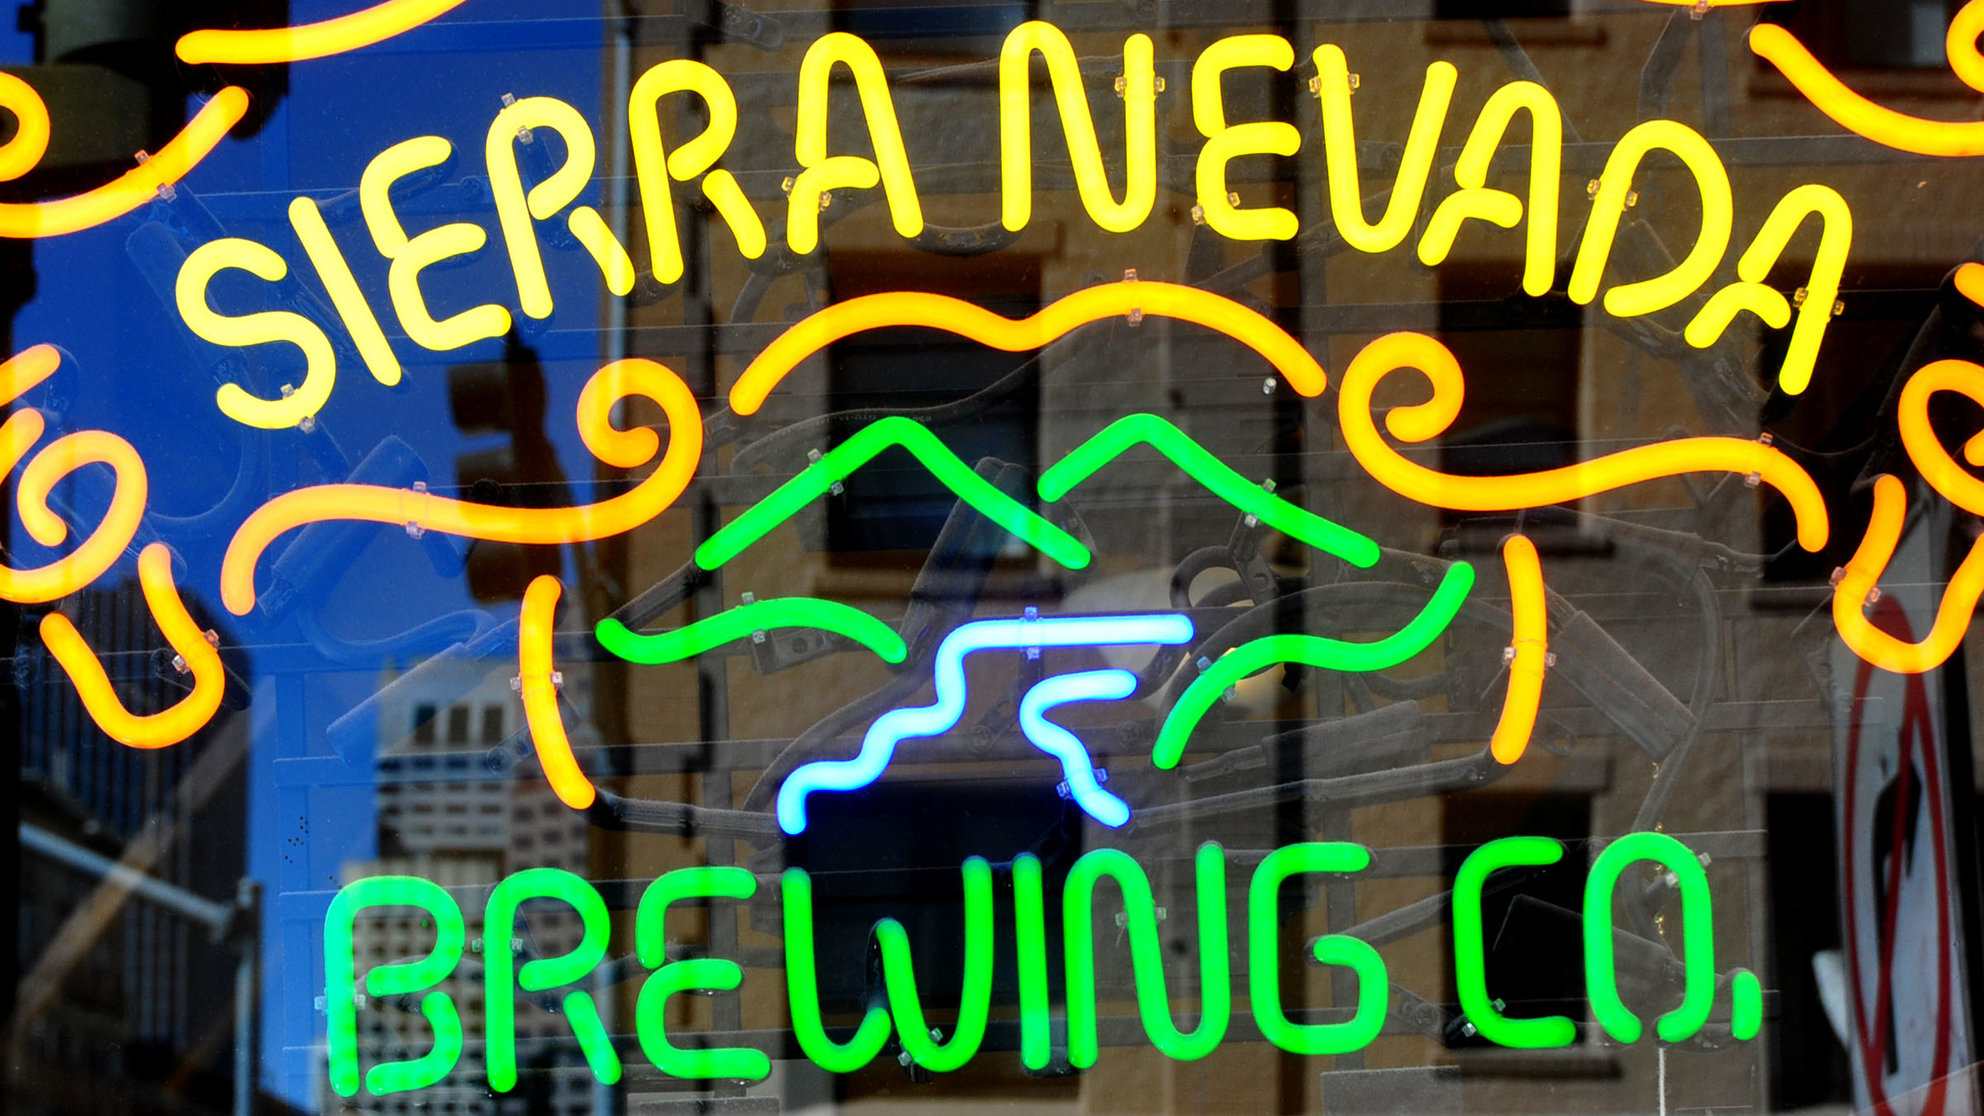 Sierra Nevada Recalls Bottles Sold in 36 States